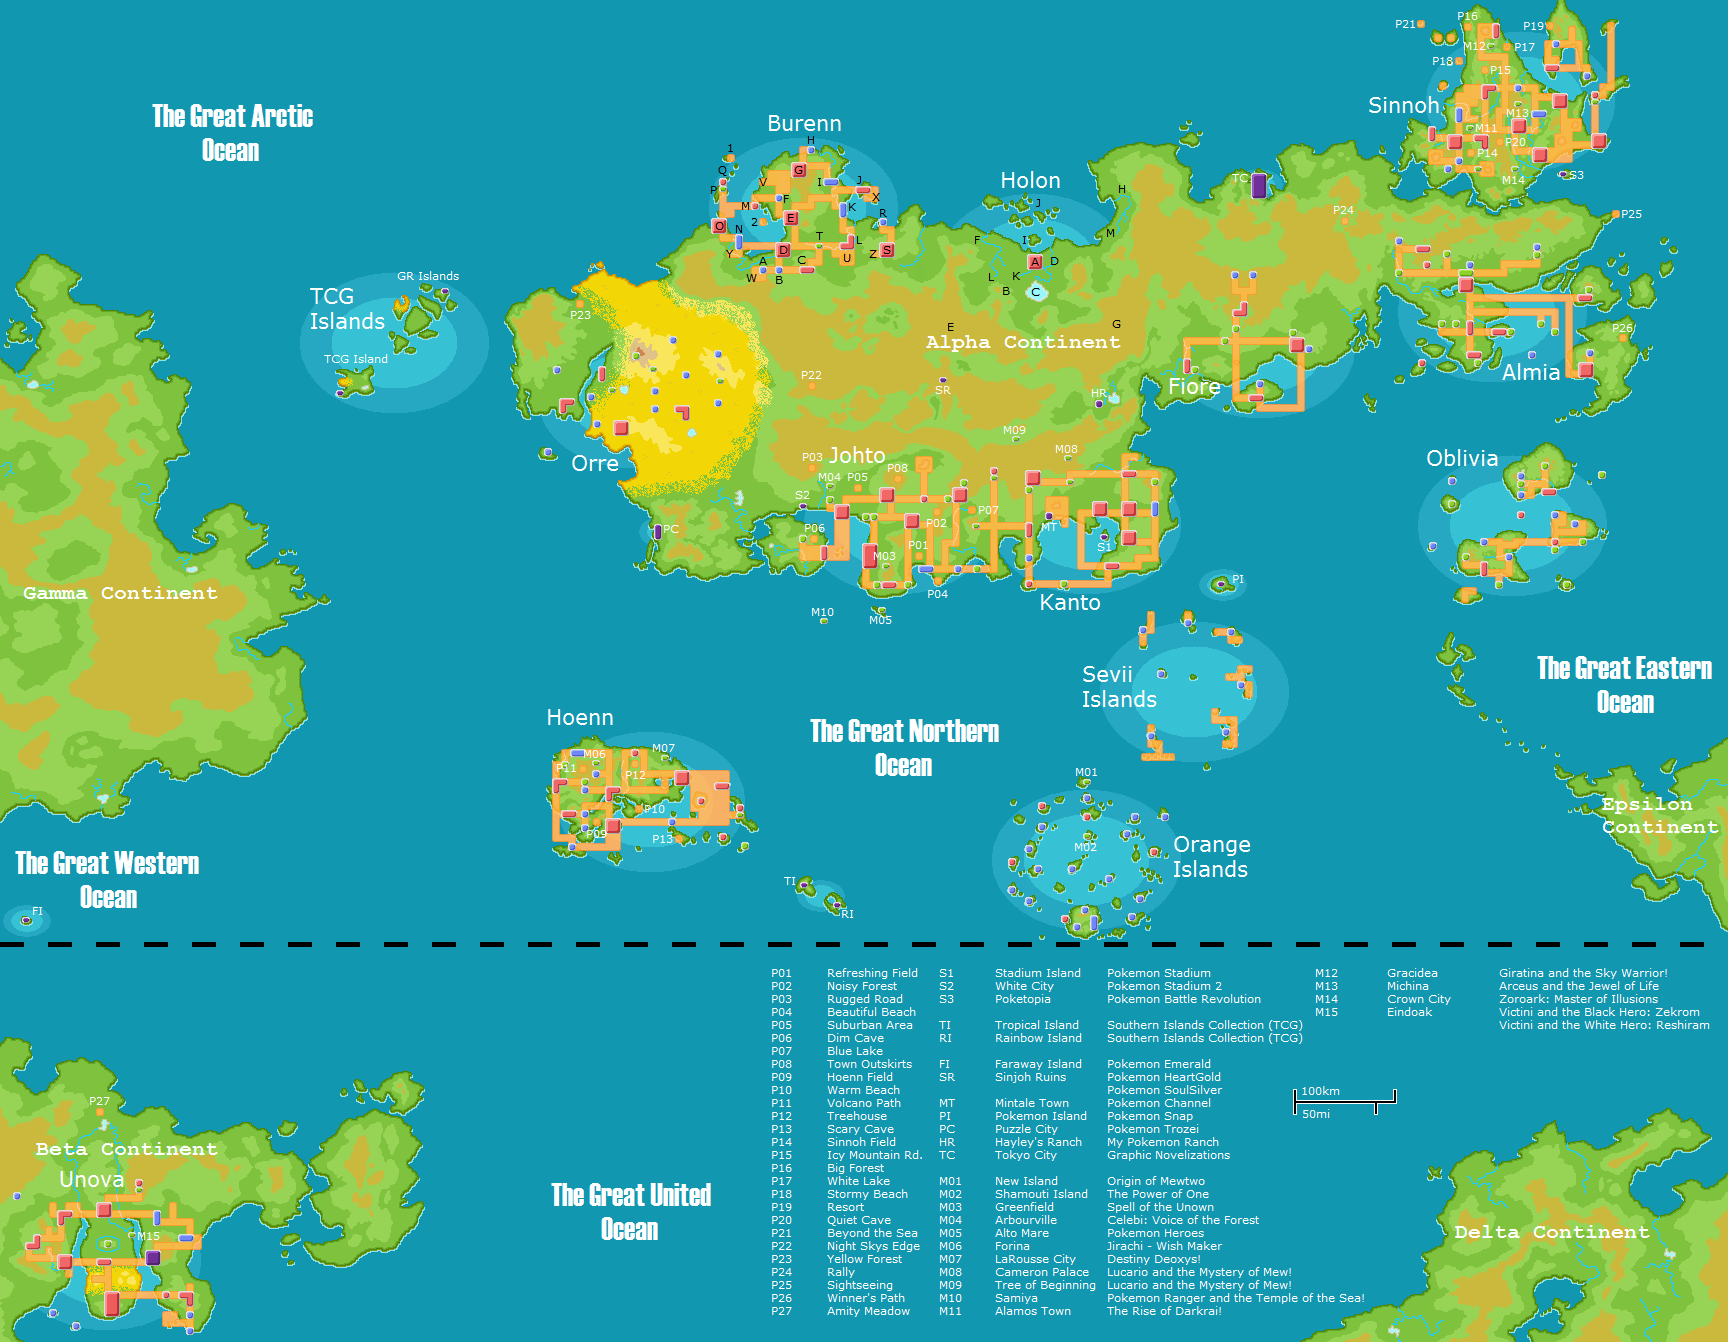 My Pokemon World Map v6.0 by JamisonHartley on DeviantArt | Pokemon ...